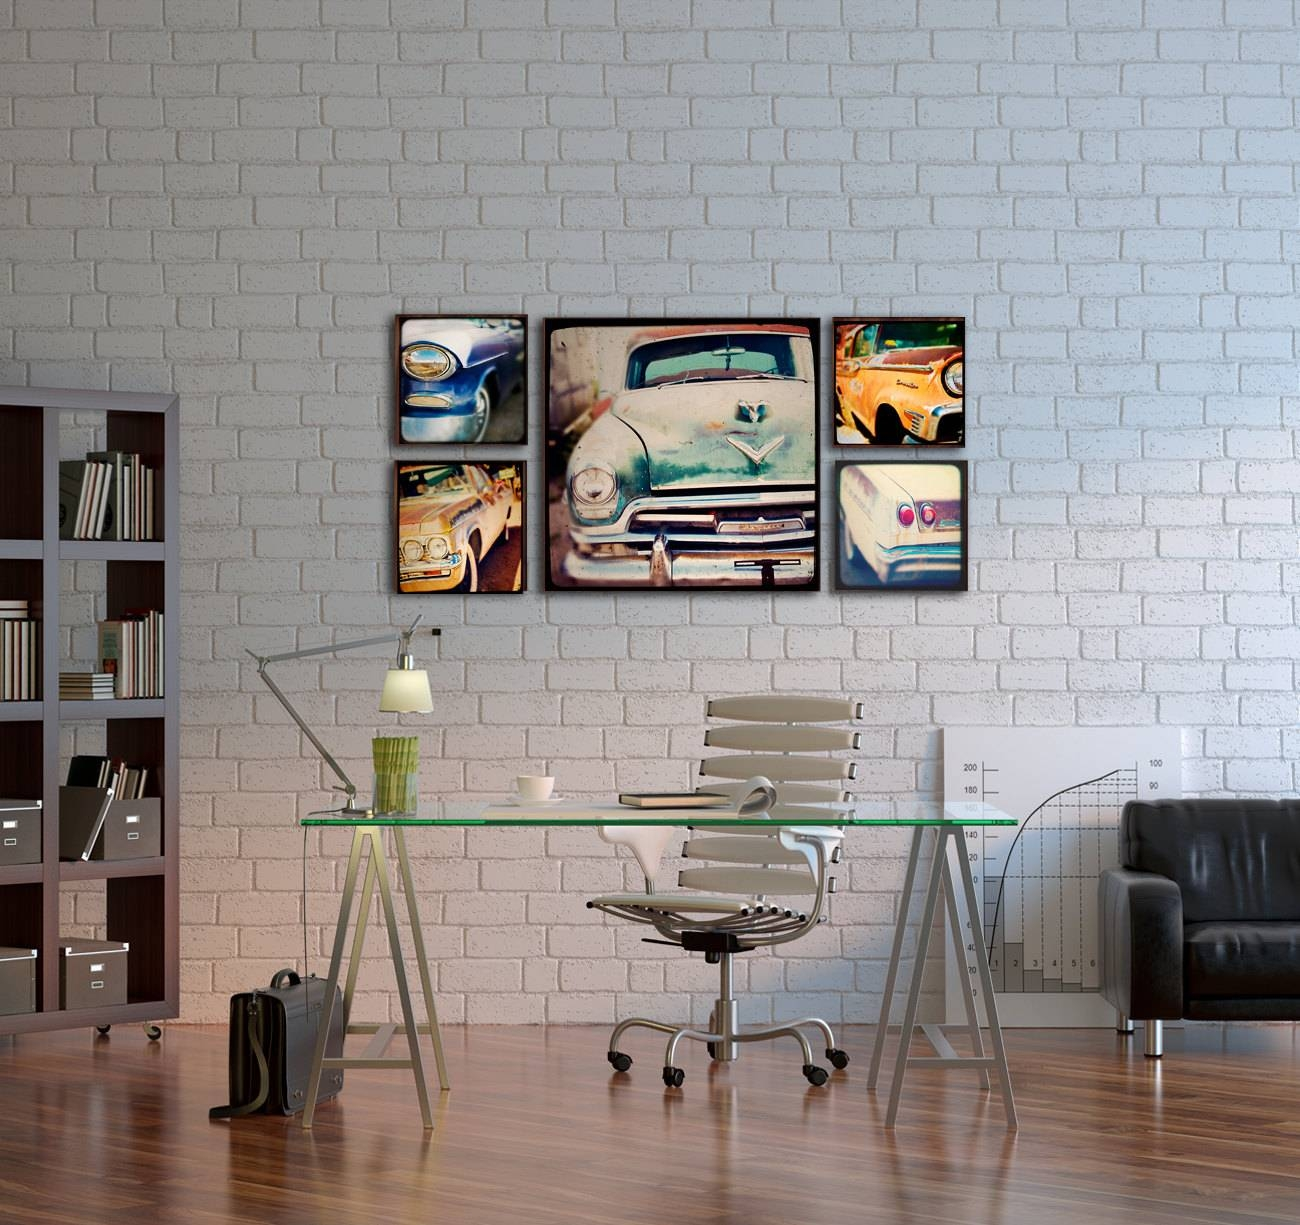 Wood Photo Blocks Vintage Cars Home Decor Wall Art Within Recent Wall Art For Offices (View 11 of 20)